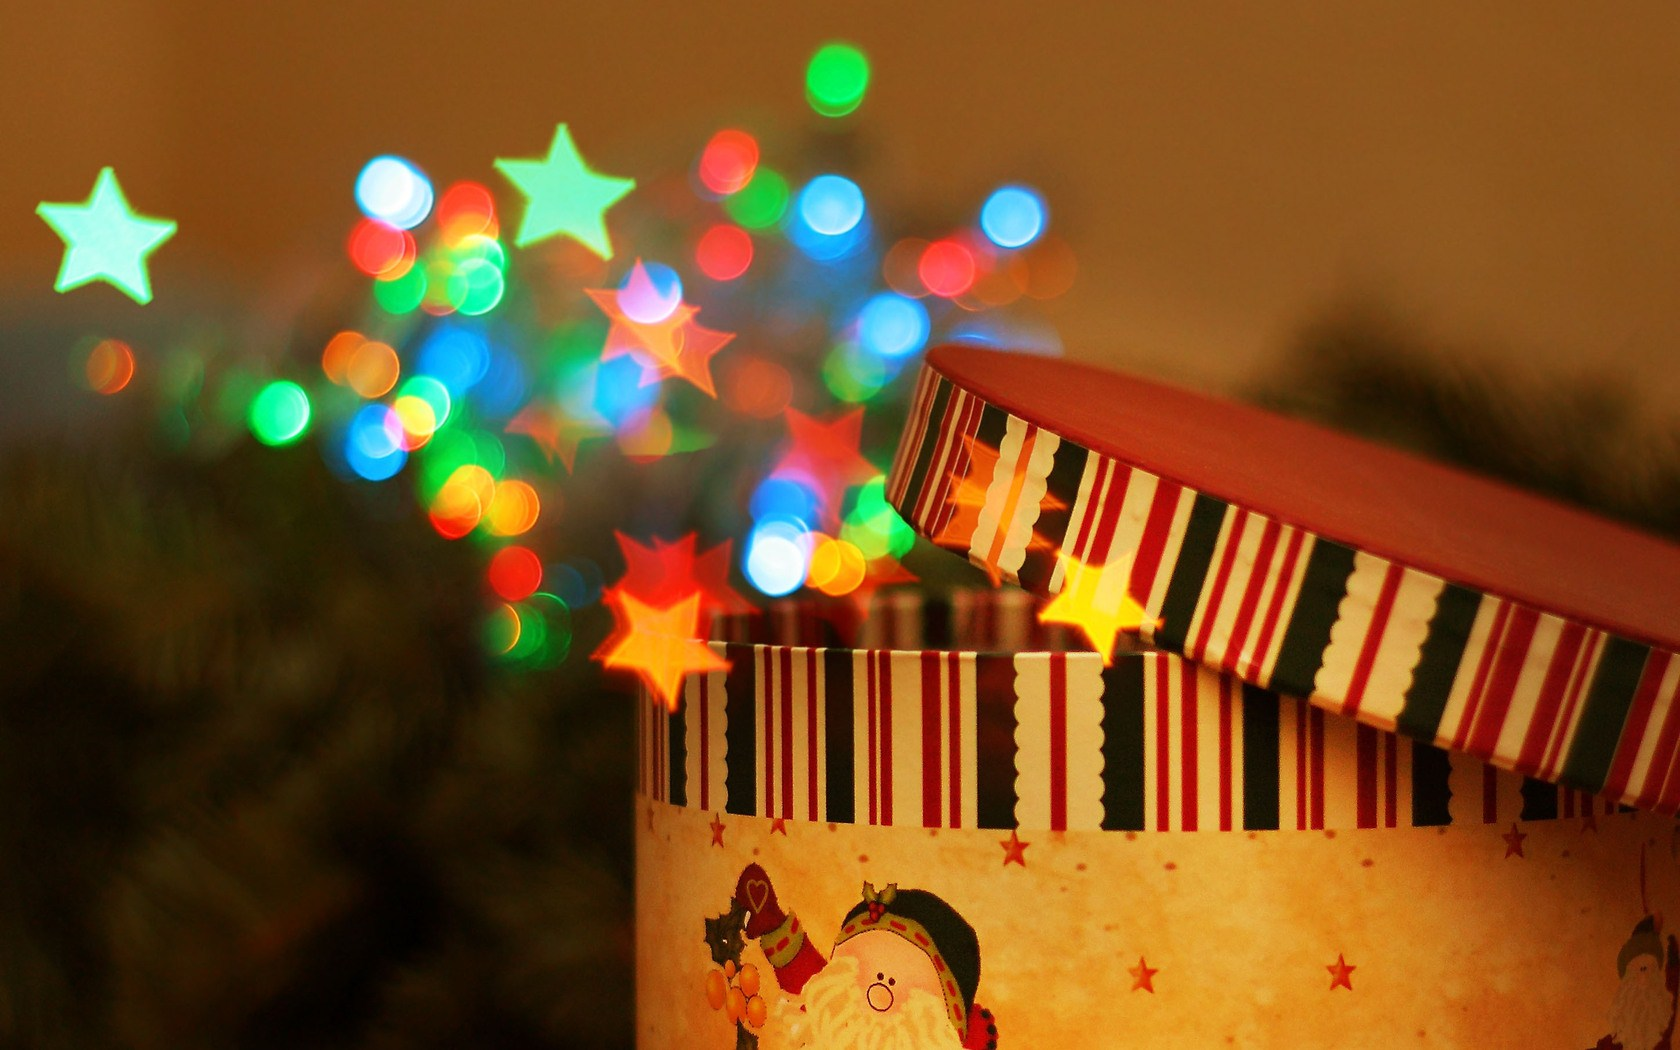 round-gift-box-christmas-colorful-stars-circles-1680x1050